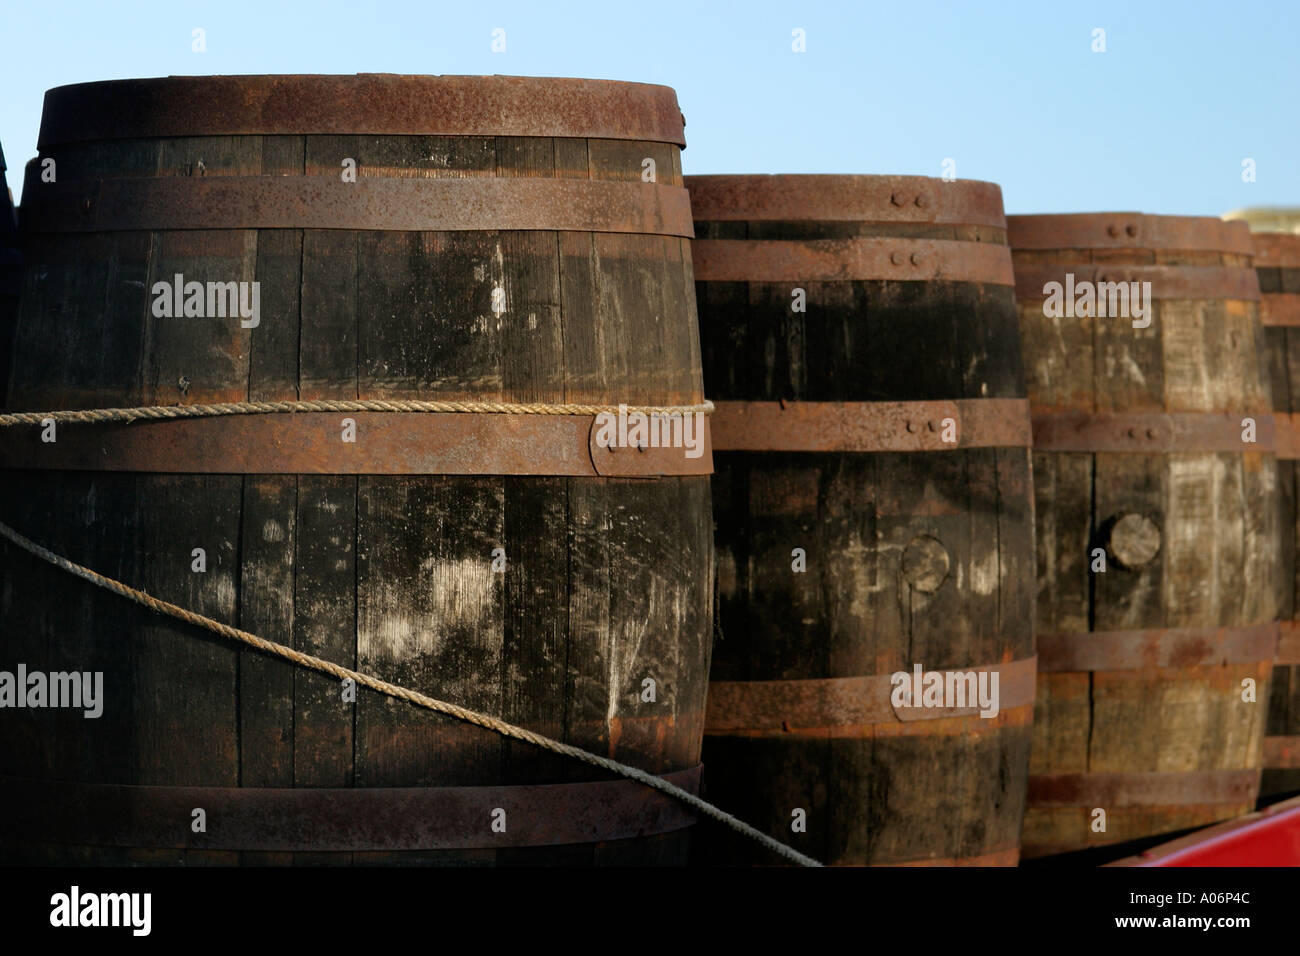 Beer barrels on back of lorry - Stock Image